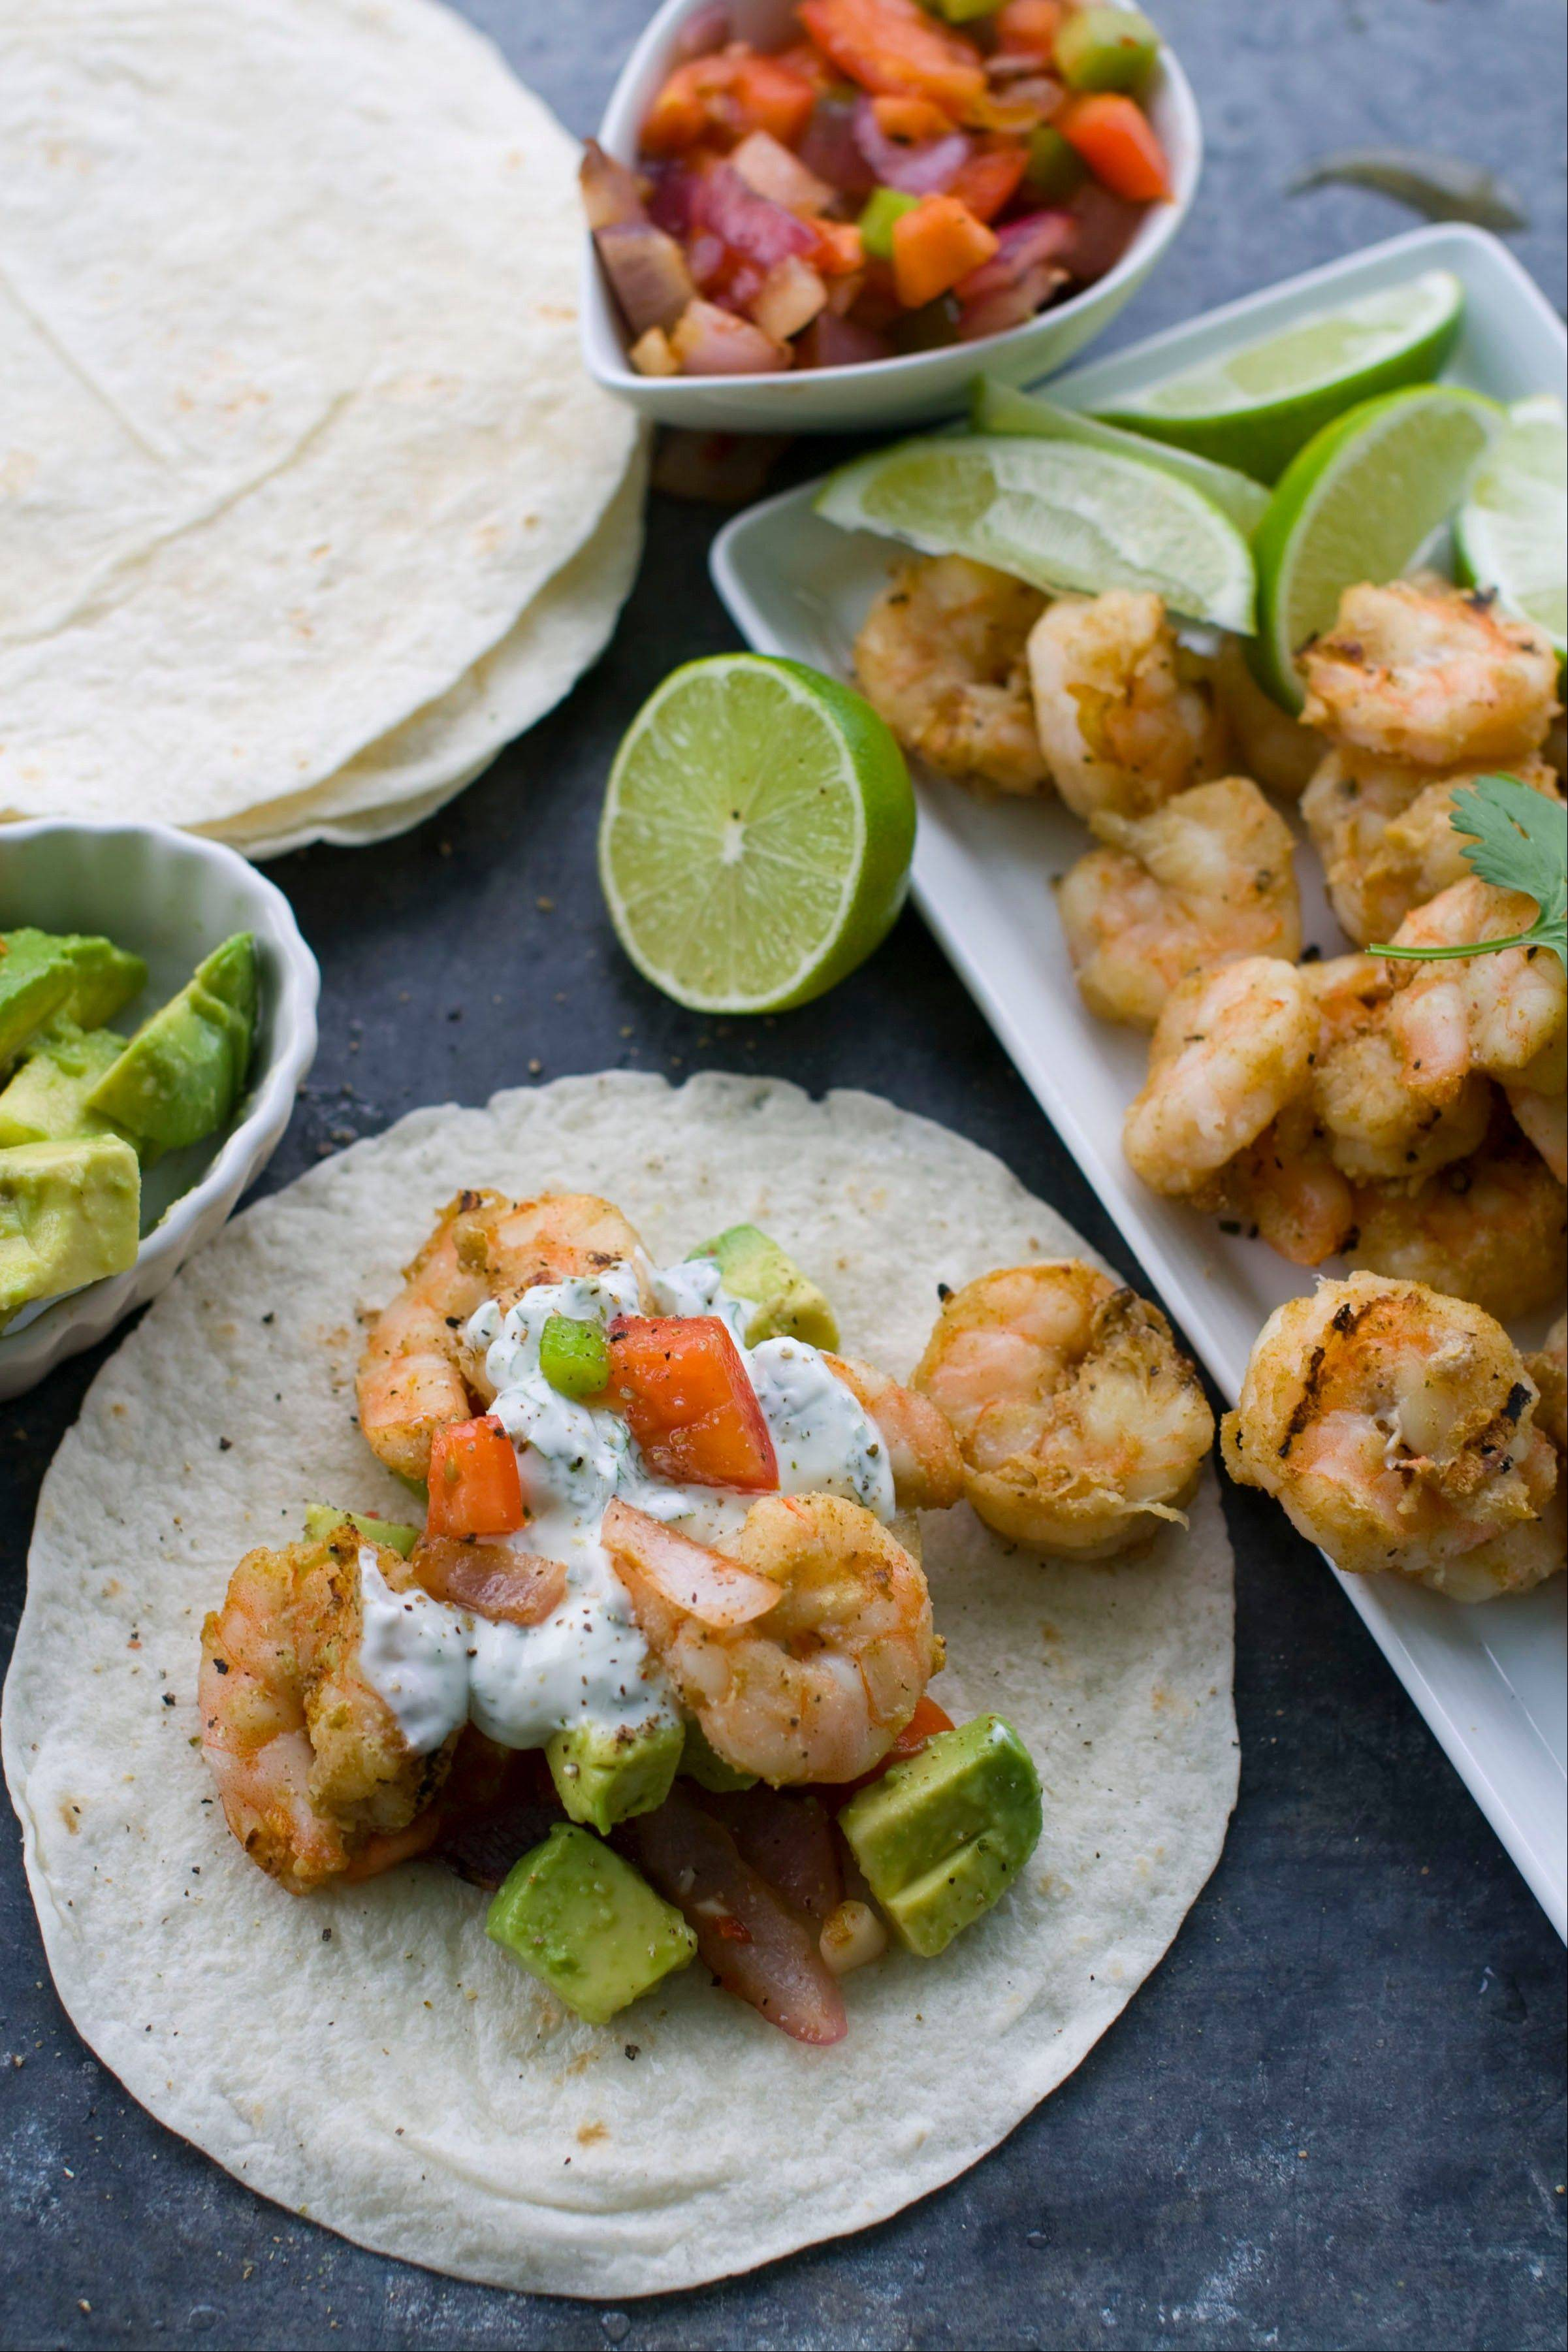 Begin the Cinco de Mayo fiesta outside with these grilled shrimp tacos.